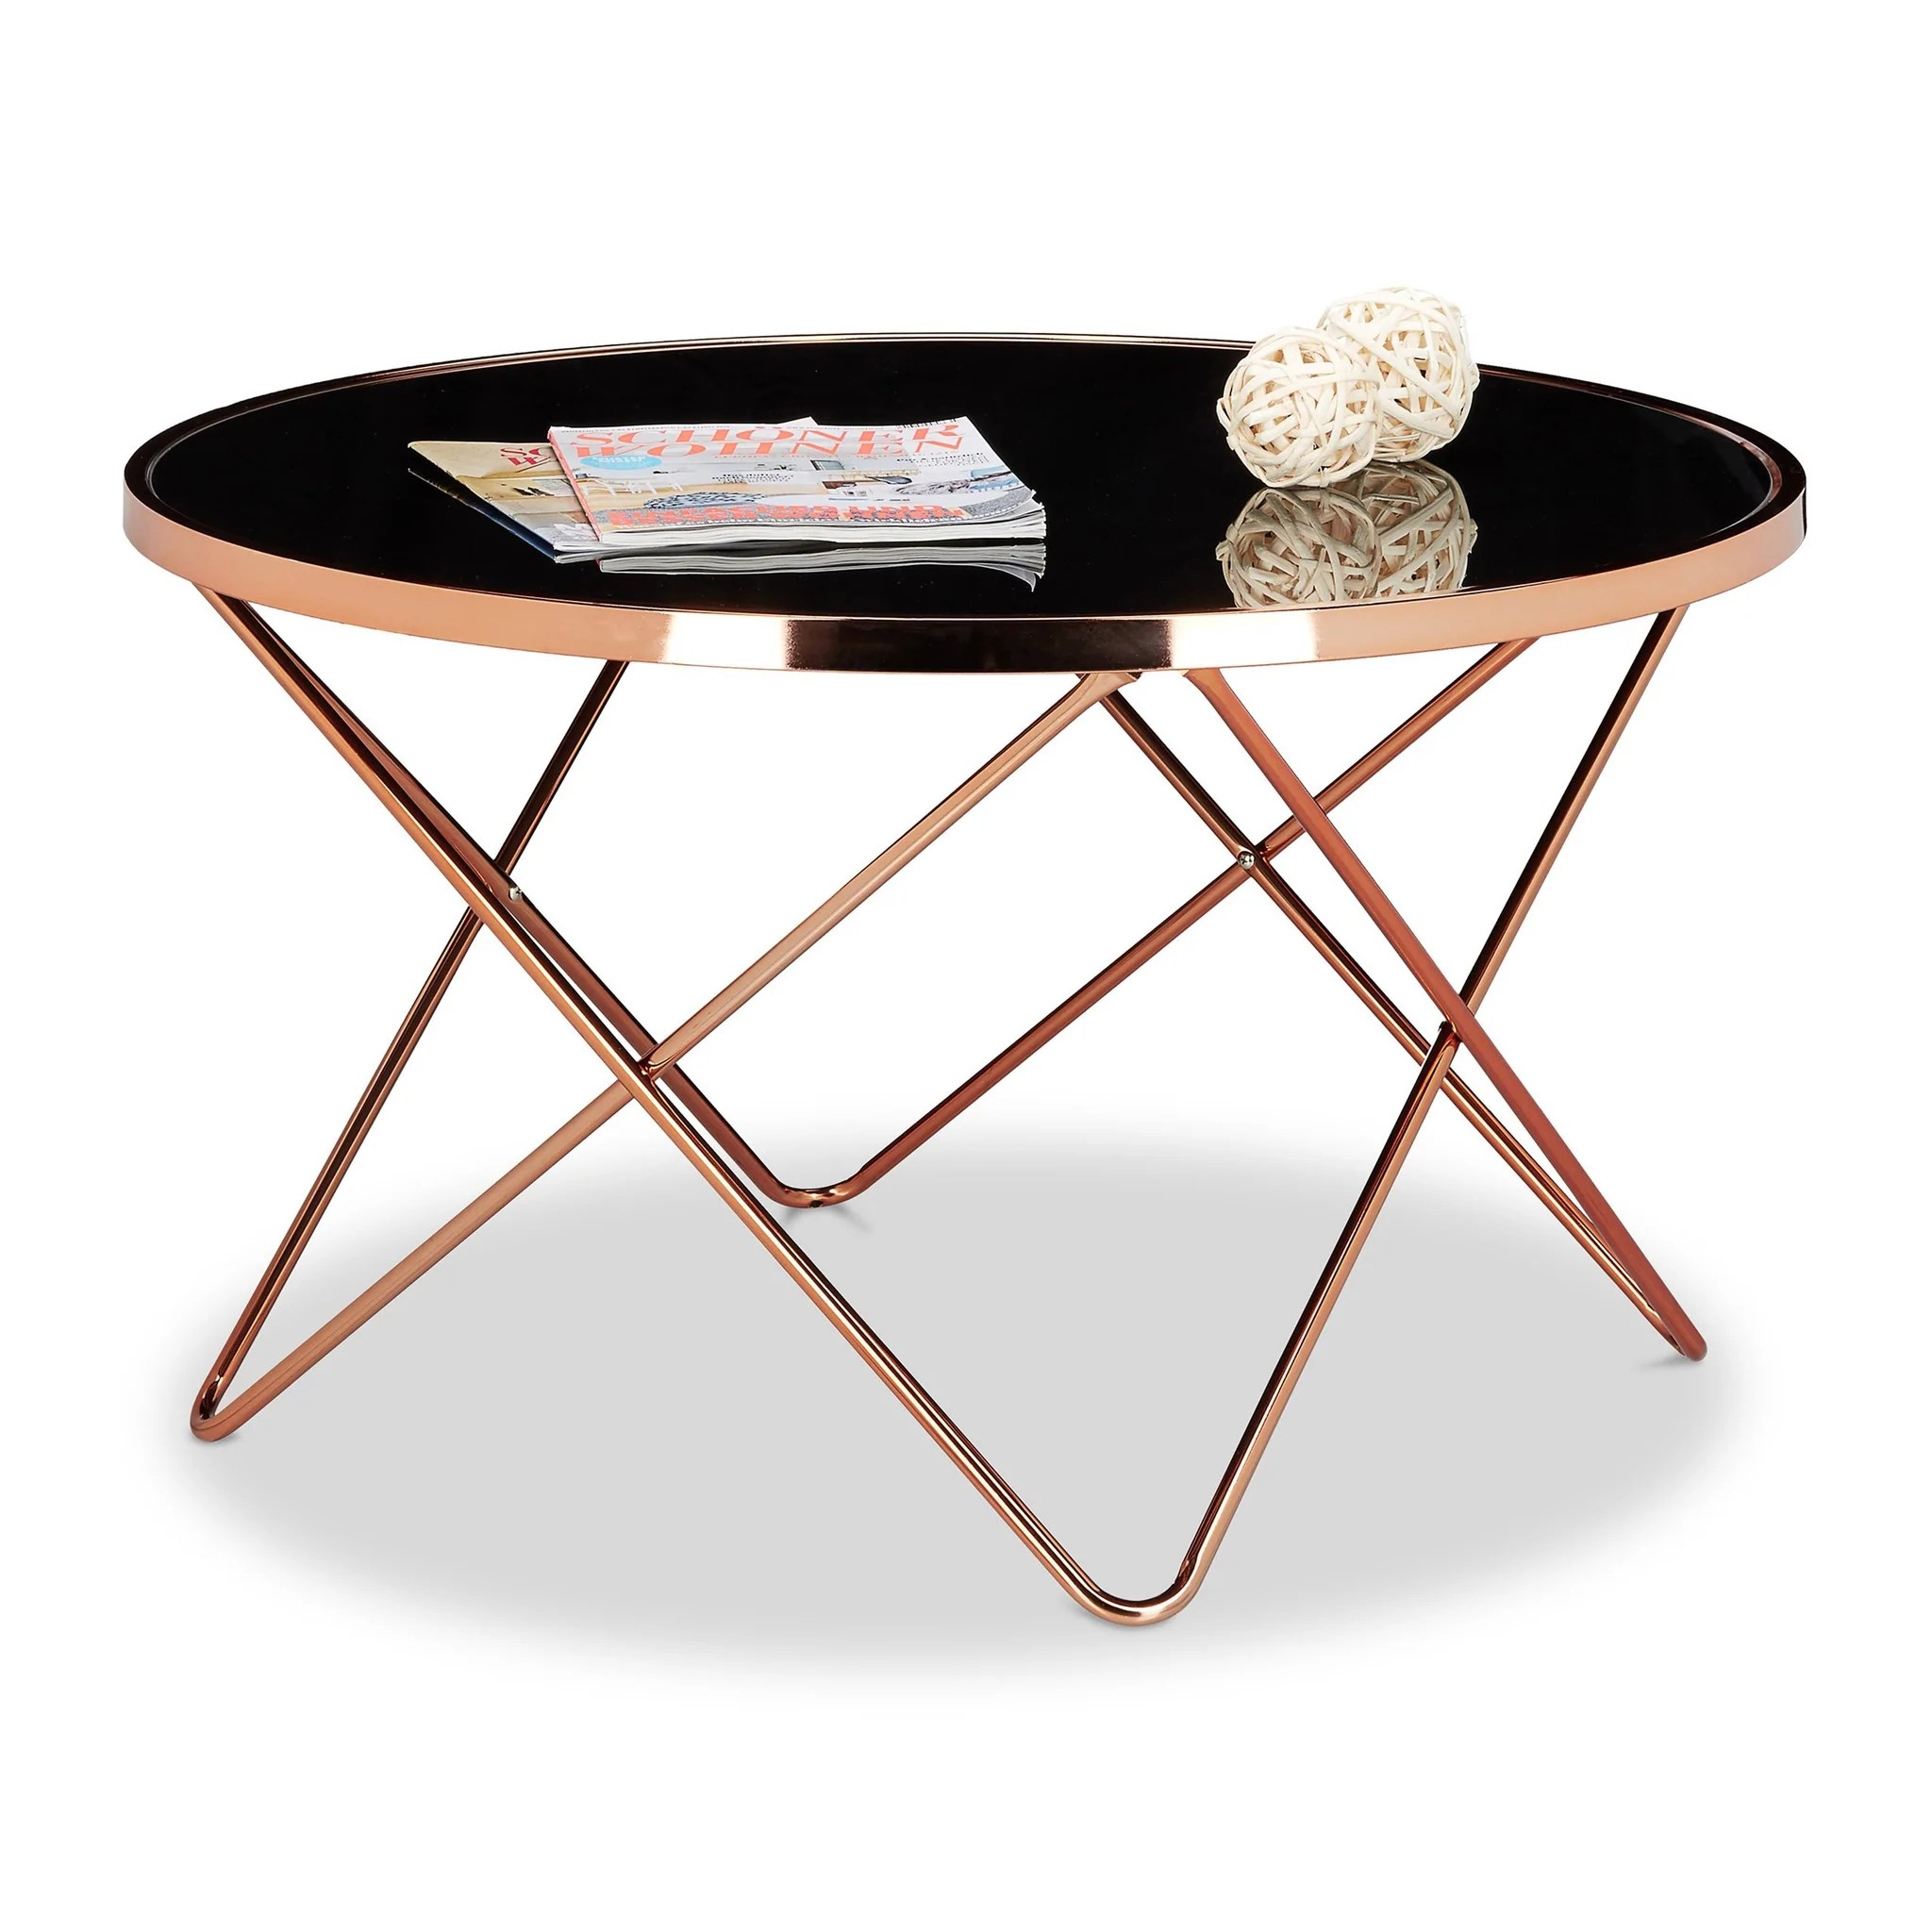 Table Basse Ronde En Verre Design Helloshop26 Table Basses Table Basse Ronde Diamètre 83 Cm Cuivre Et